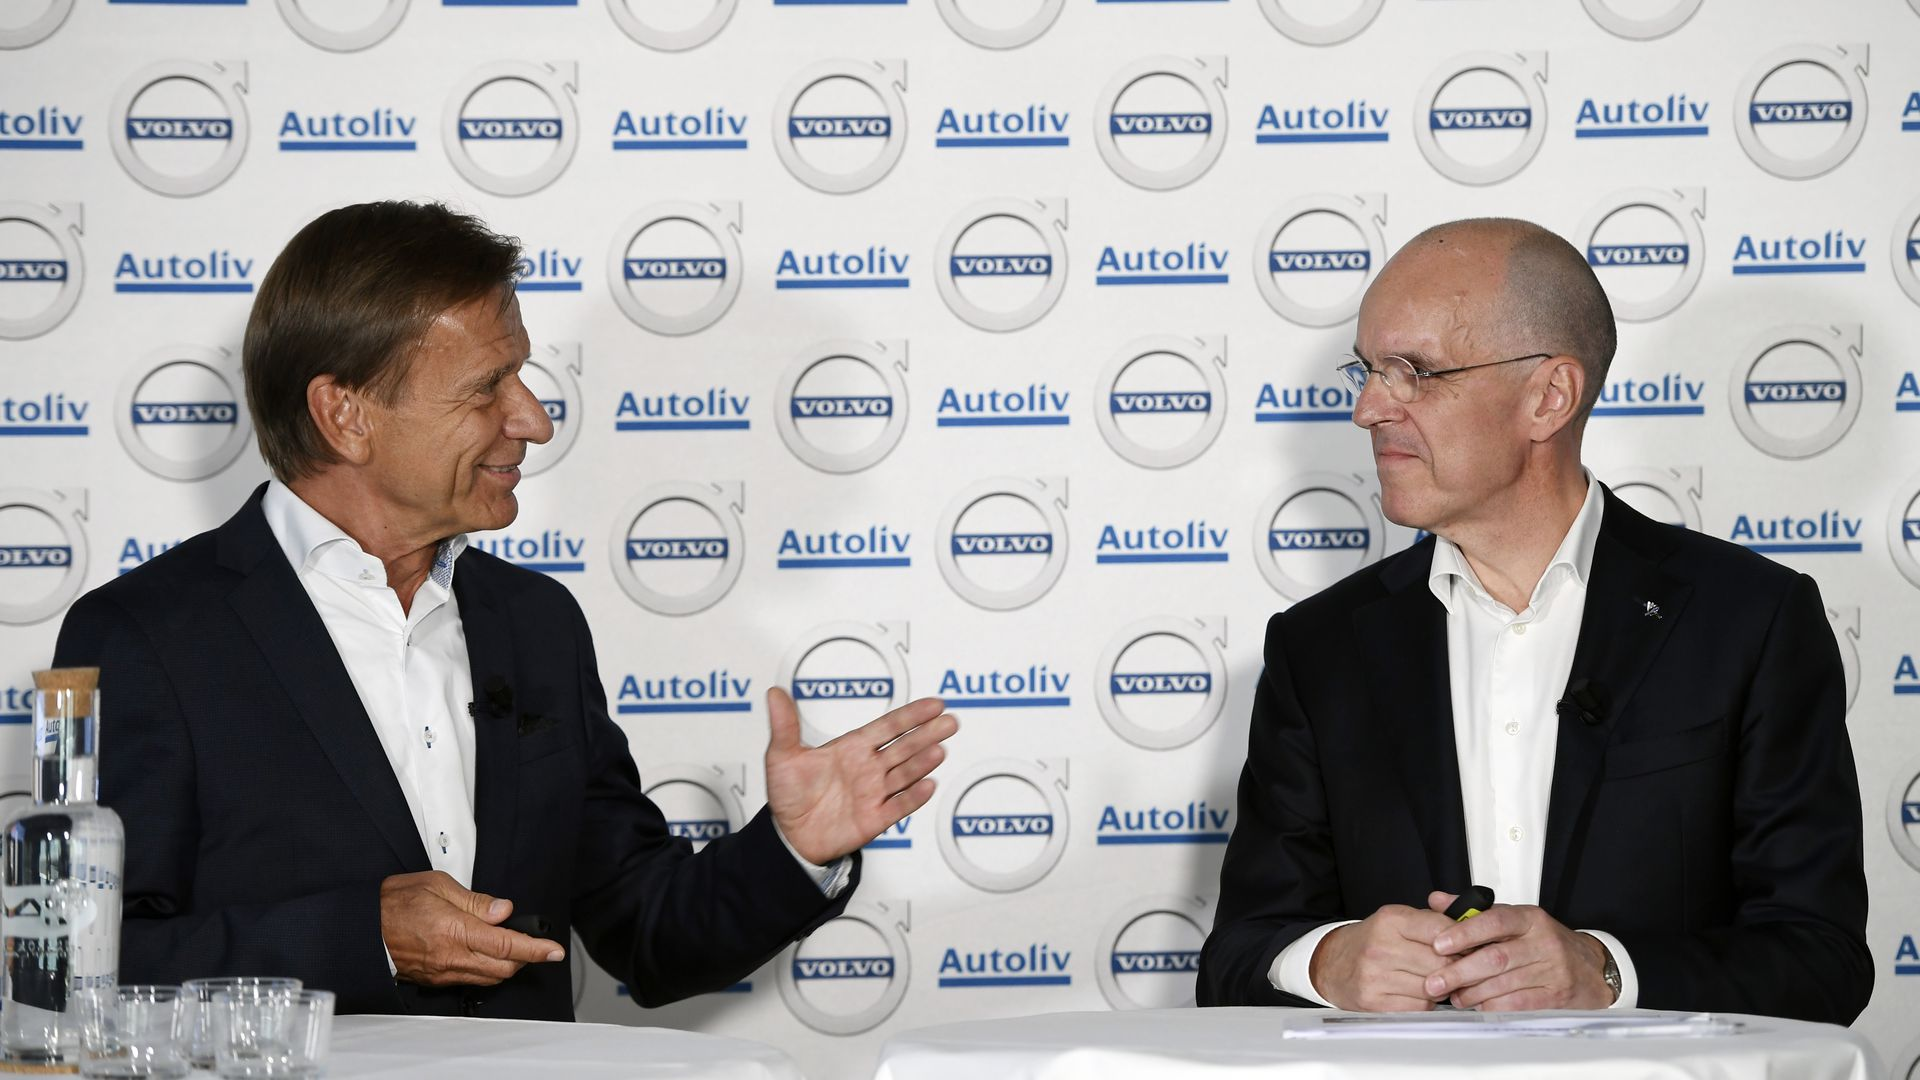 CEO of Volvo Cars Corporation AB and Jan Carlson CEO of Autoliv,